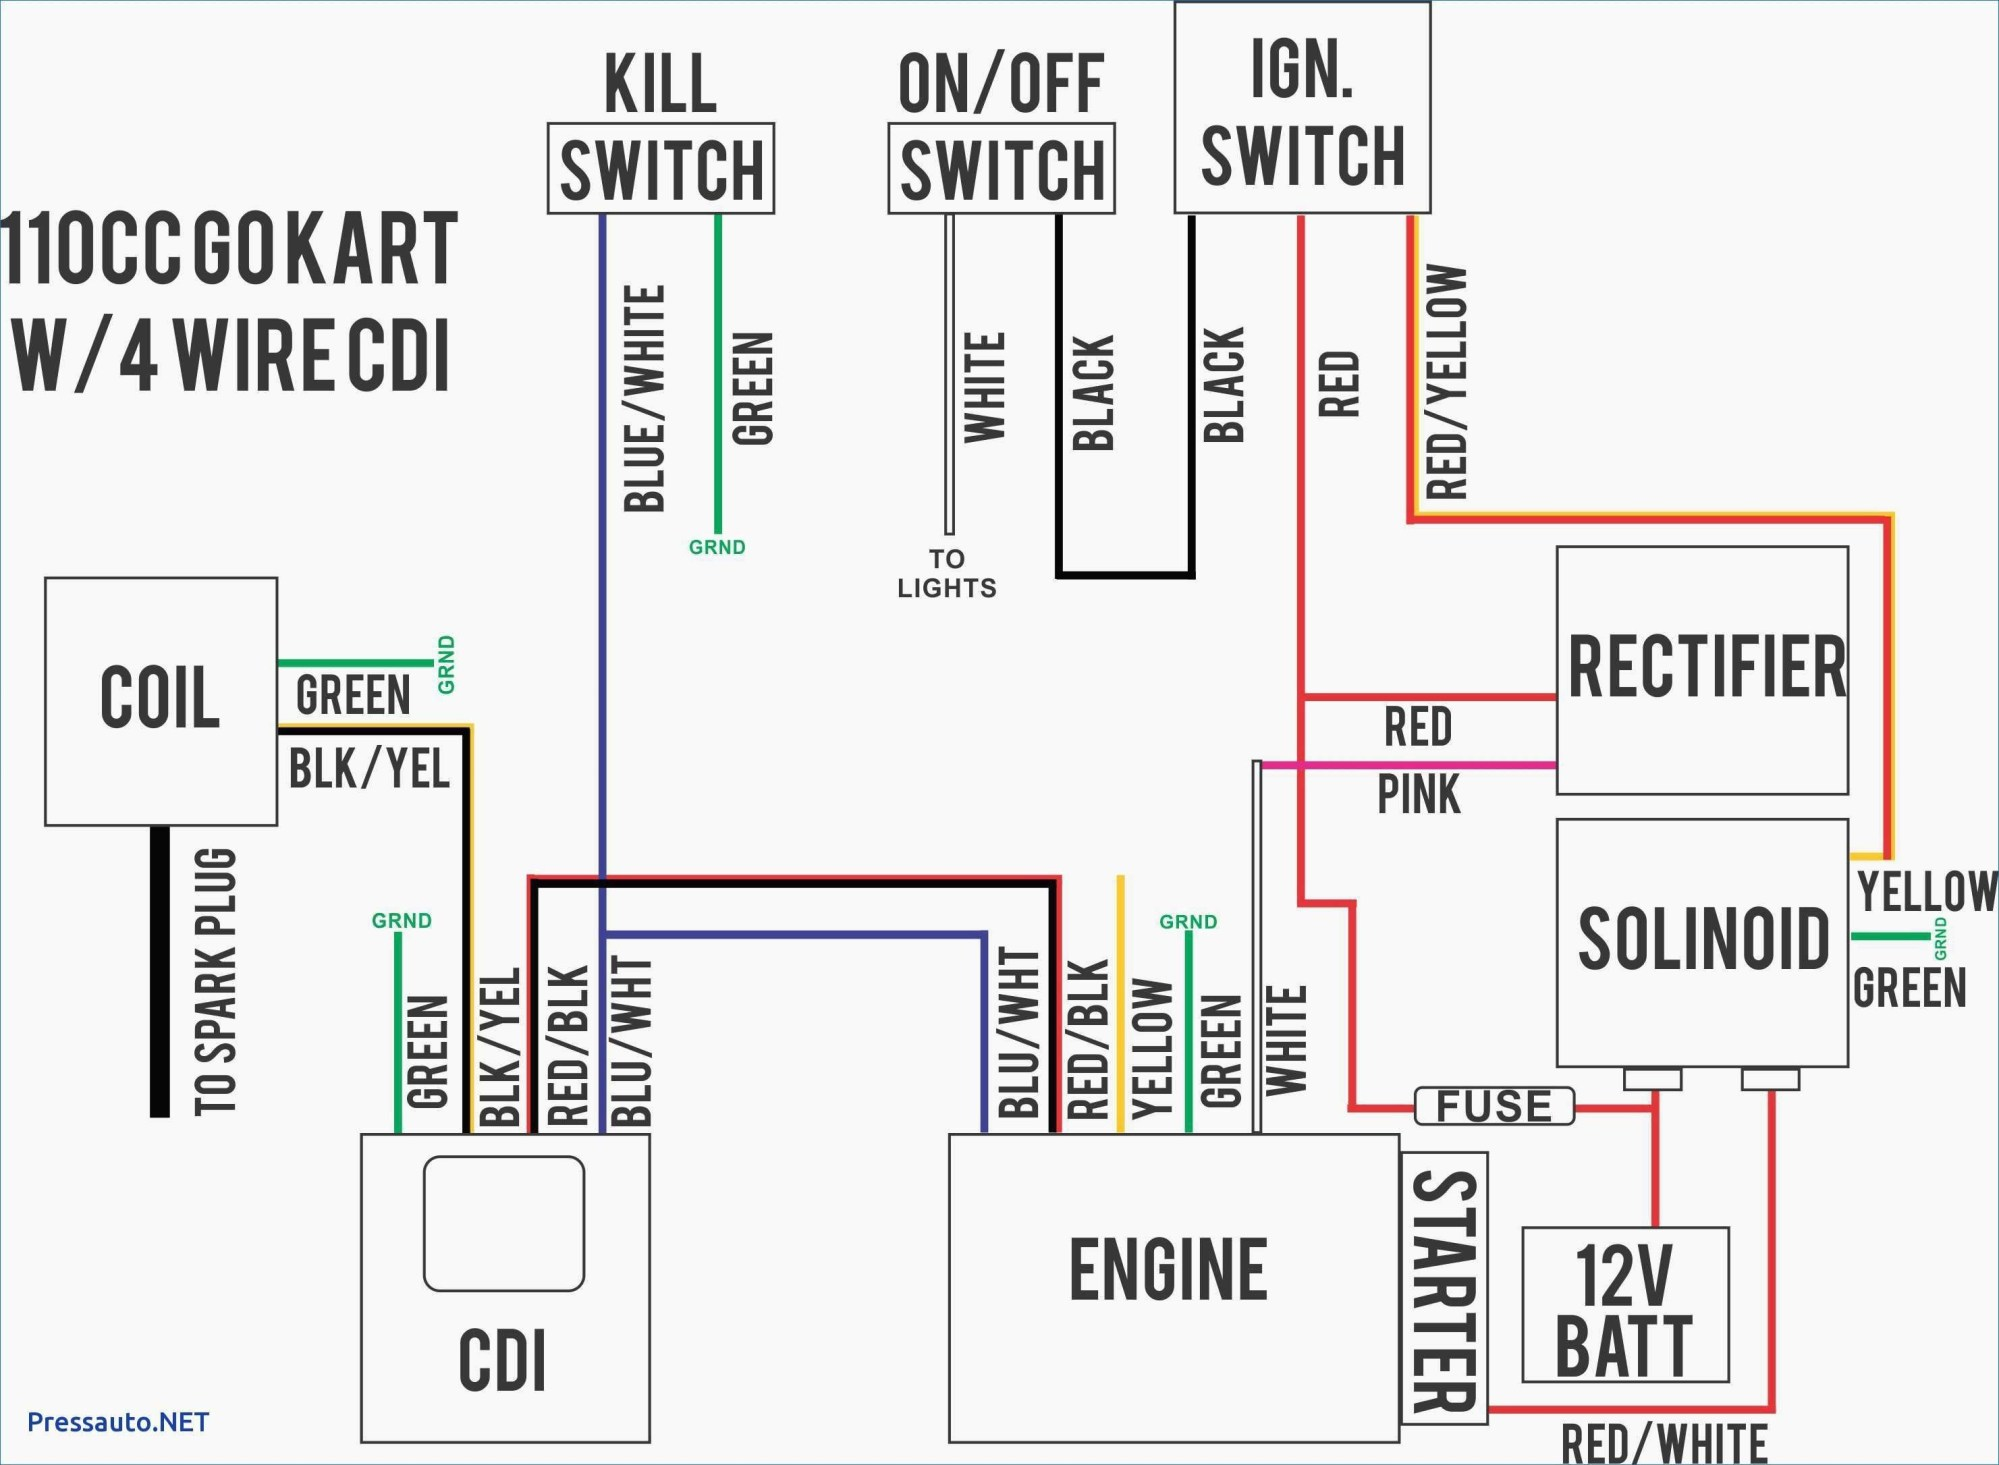 hight resolution of kazuma engine wiring diagram wiring diagram database kazuma engine wiring diagram wiring diagram name kazuma engine